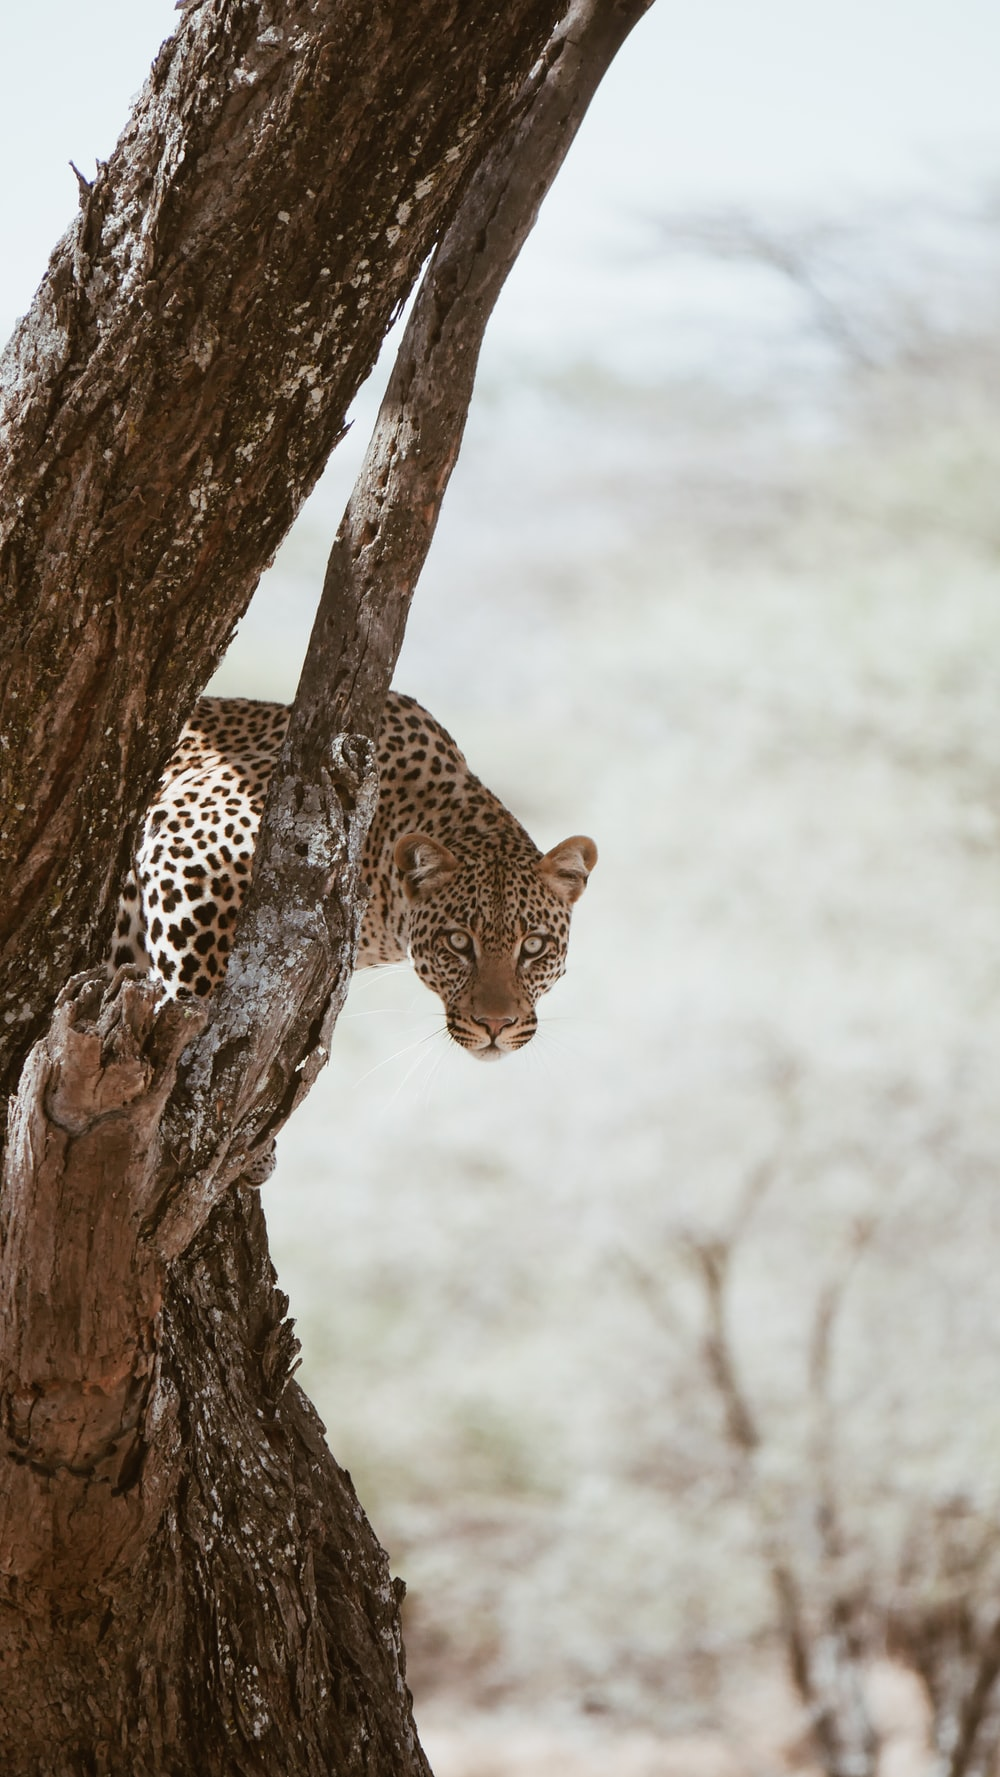 leopard on brown tree trunk during daytime